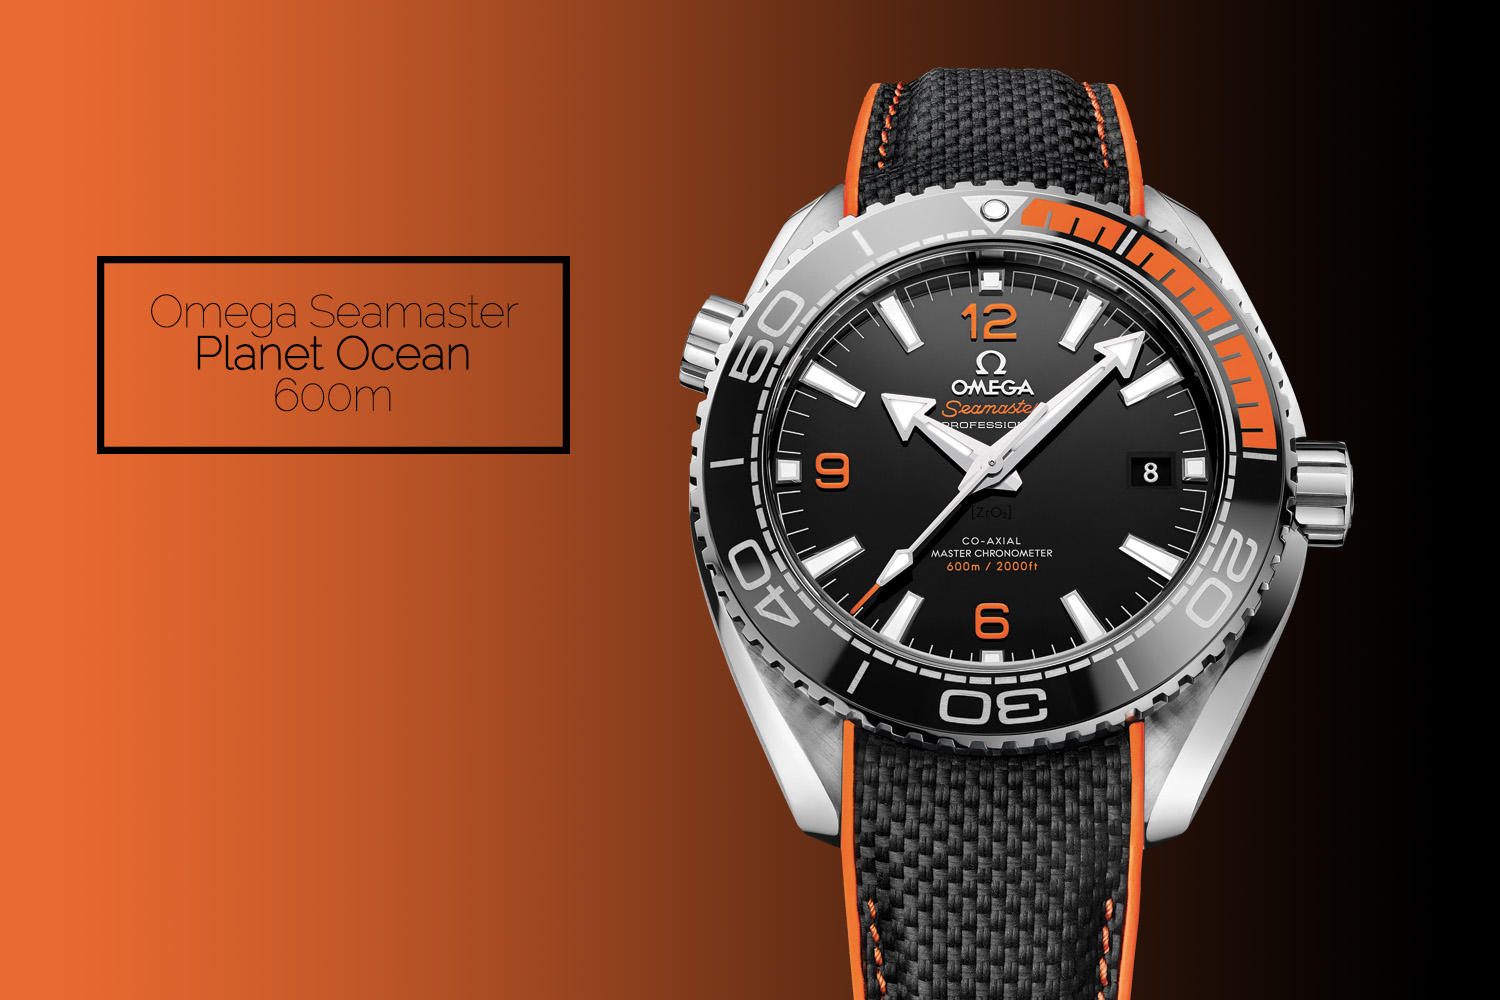 Omega Seamaster Planet Ocean 600m black orange 2016